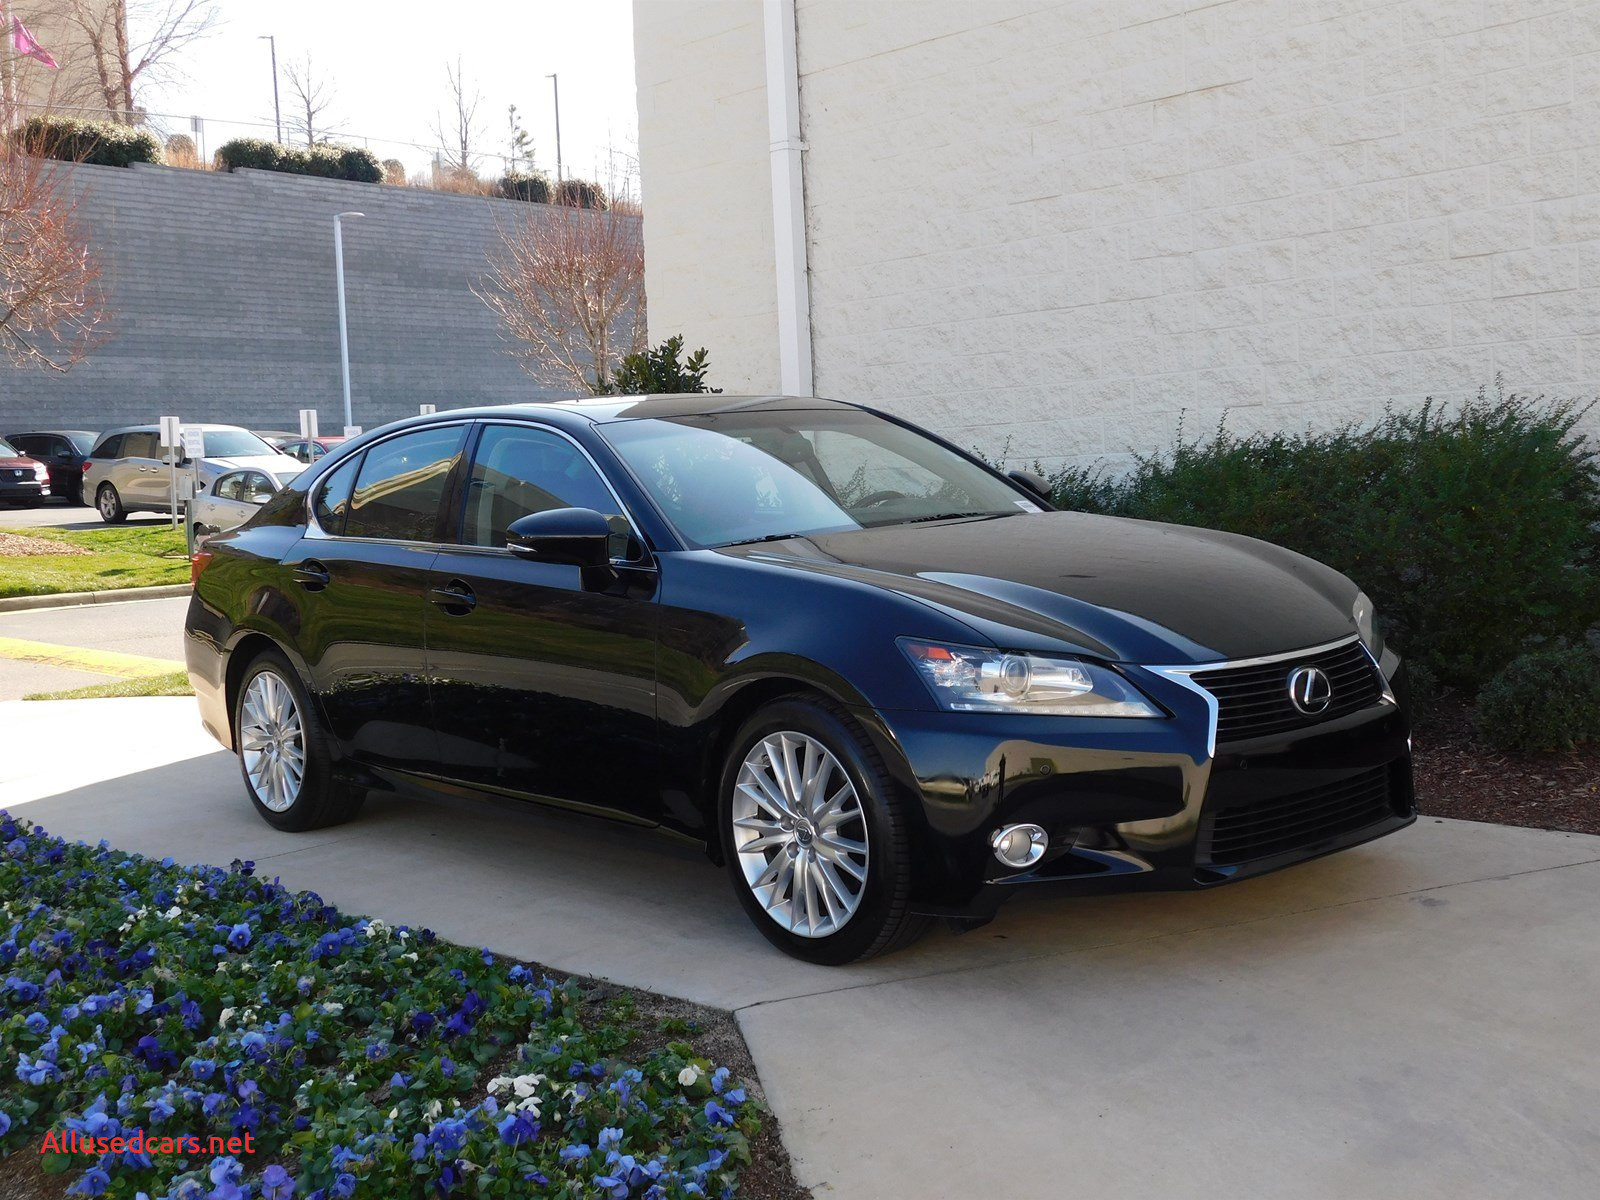 2013 Lexus Gs 350 Inspirational Pre Owned 2013 Lexus Gs 350 4dr Sdn Rwd with Navigation